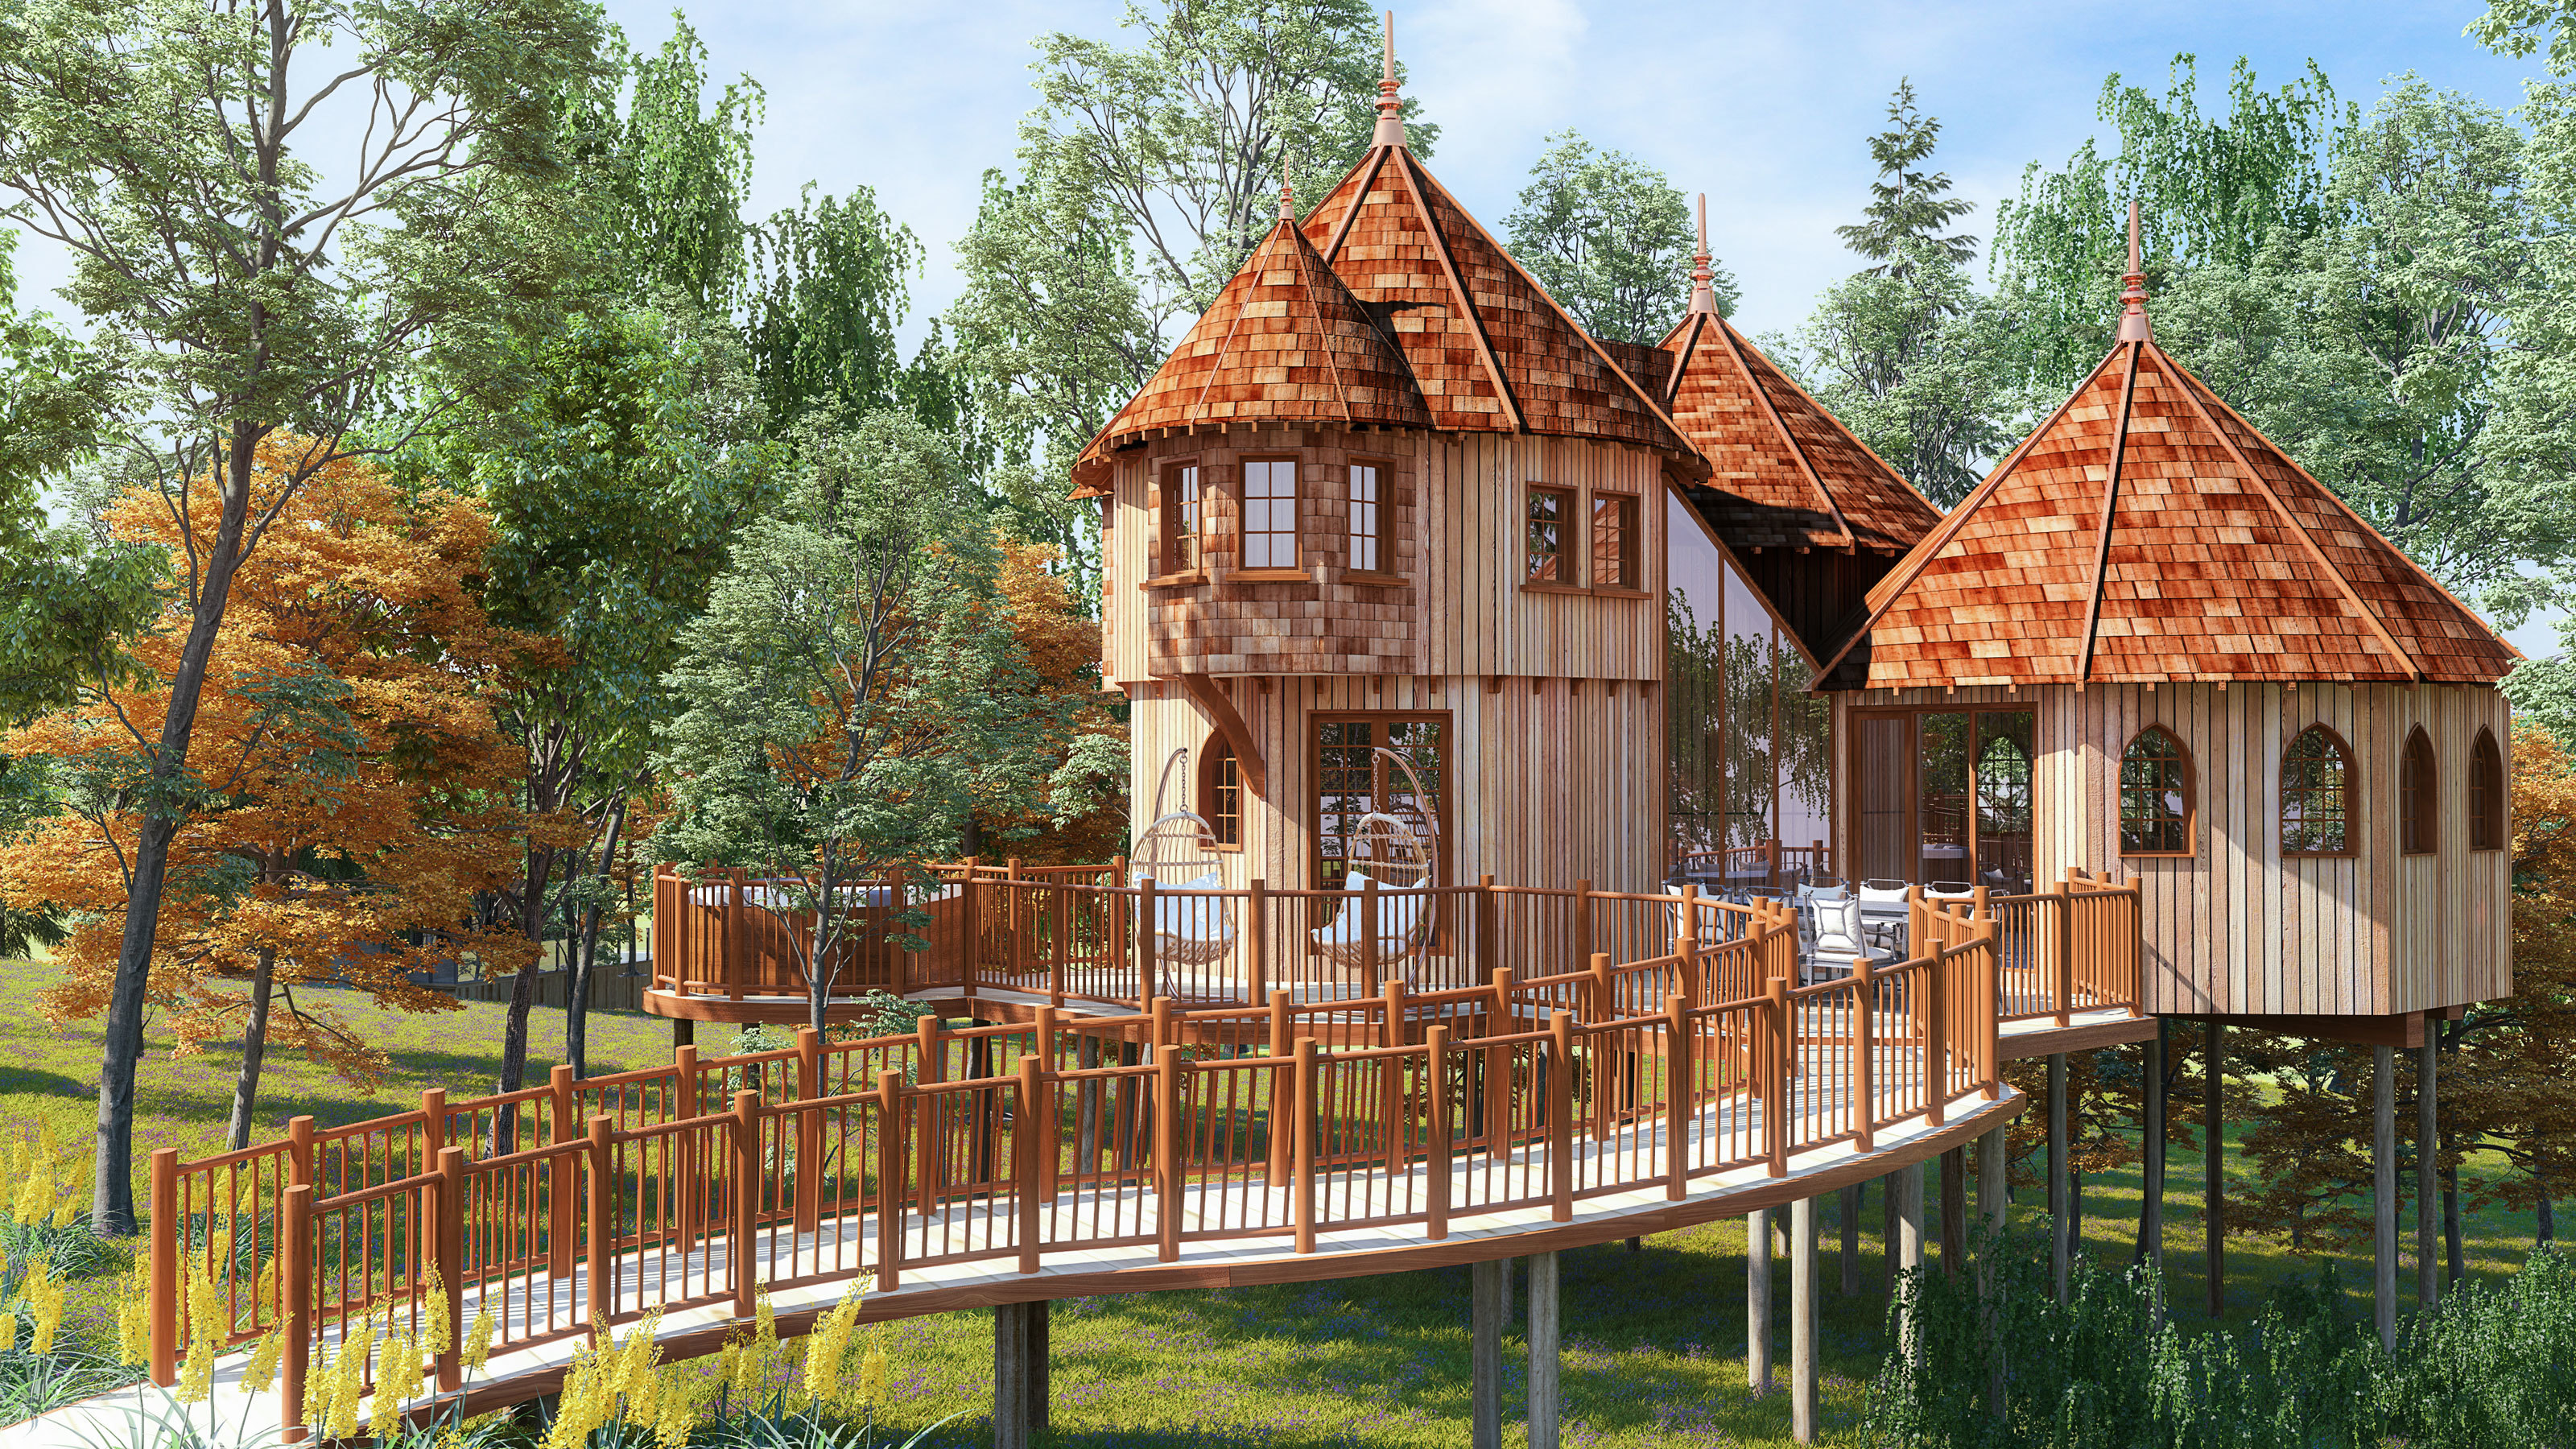 New treehouses at Shorefield Country Park